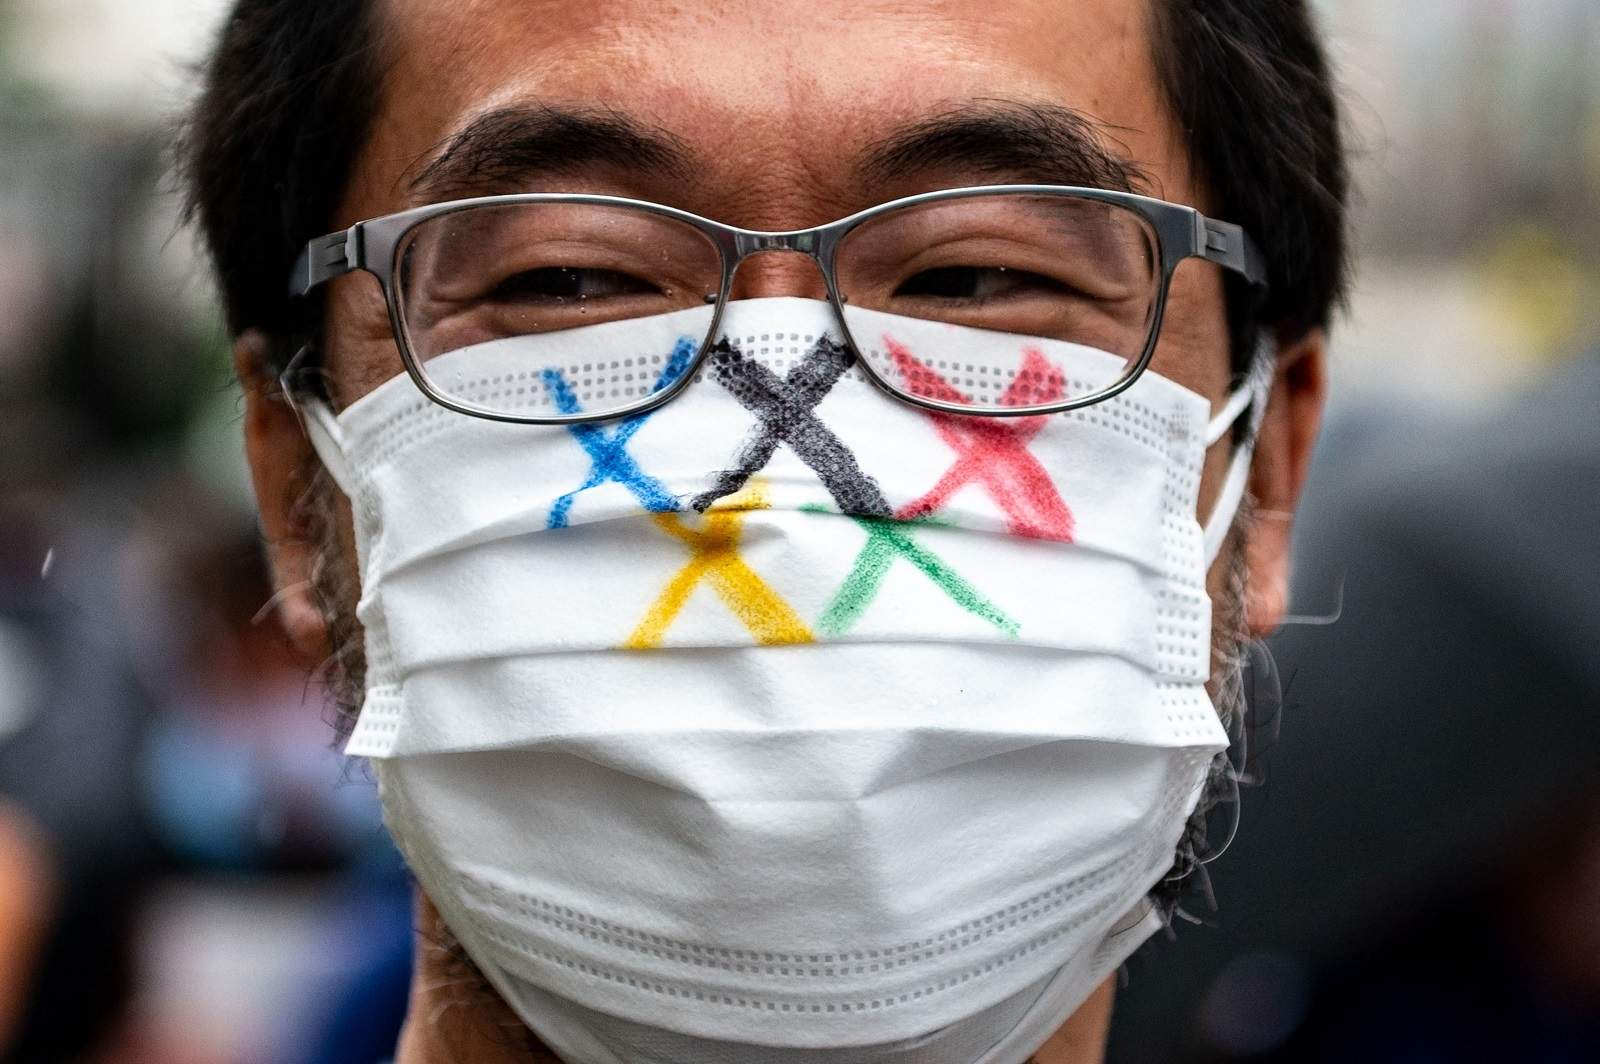 An activist marches to Tokyo's Metropolitan Government Building to protest against the Tokyo Olympics, 19 June 2021 (Philip Fong/AFP via Getty Images)